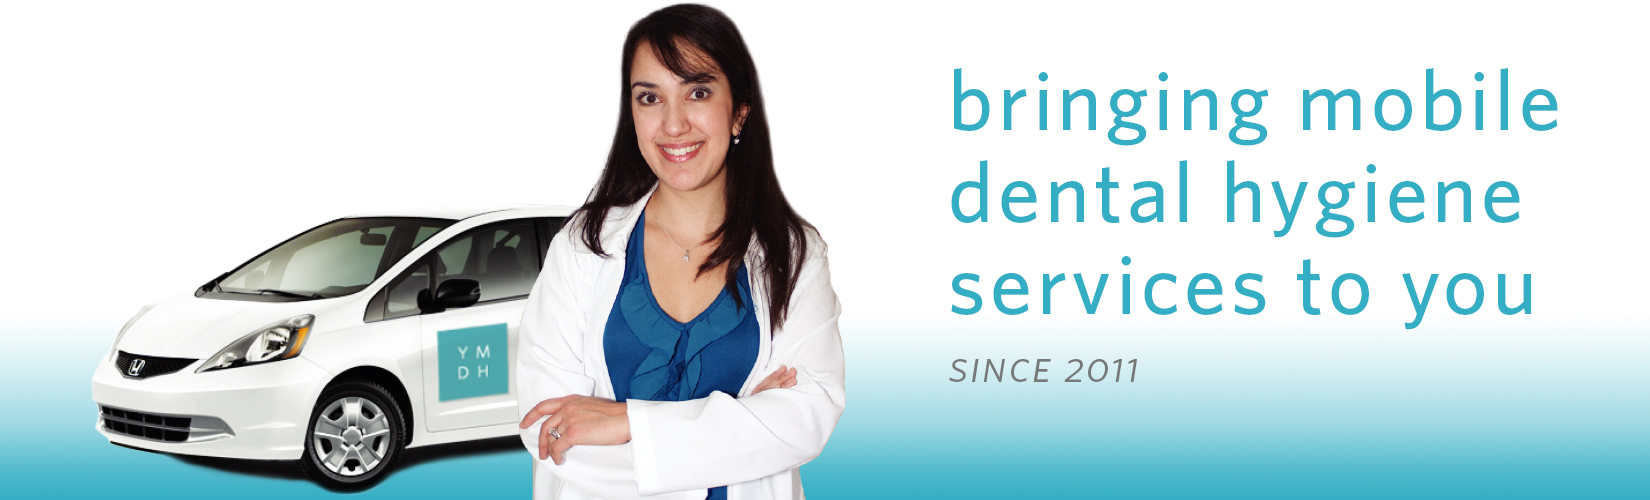 York Mobile Dental Hygiene